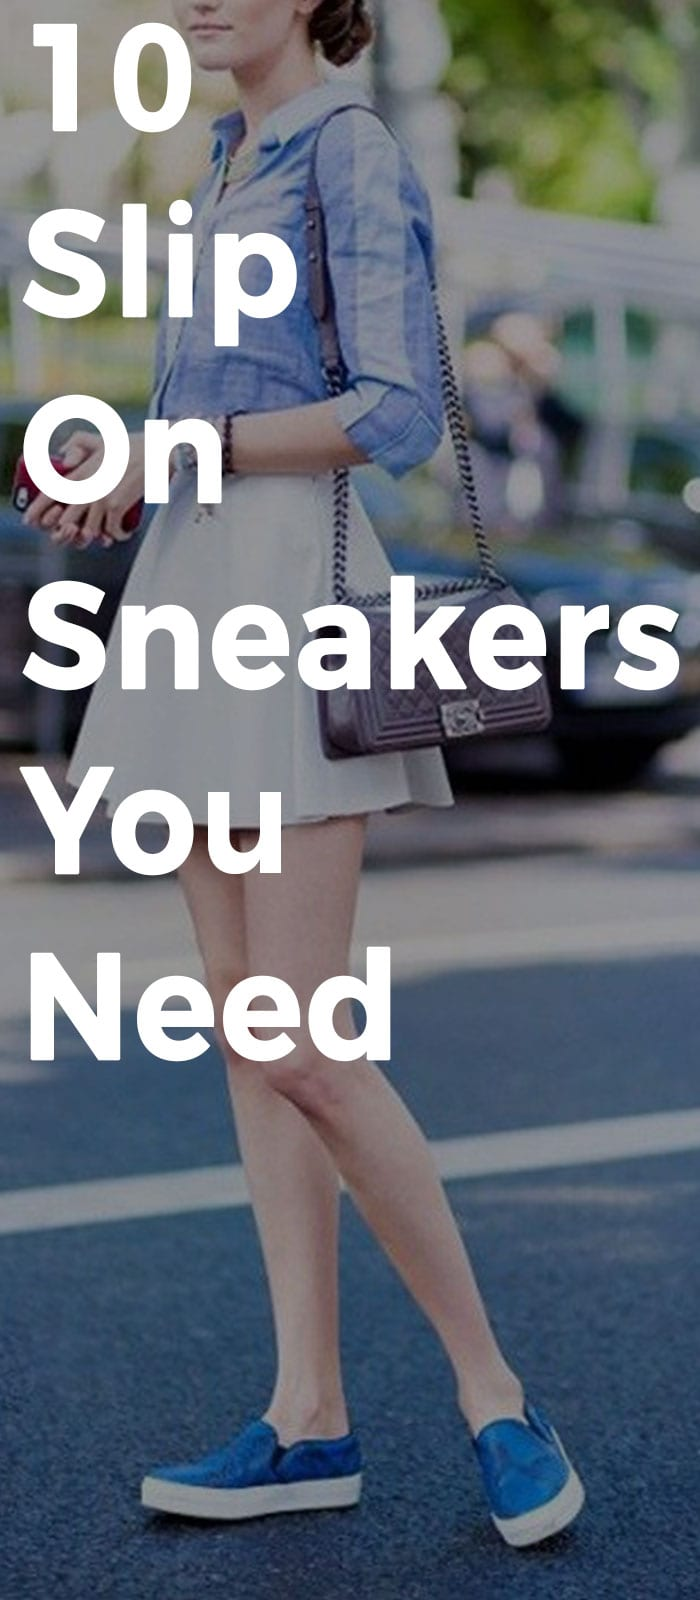 10 Slip On Sneakers You Need.